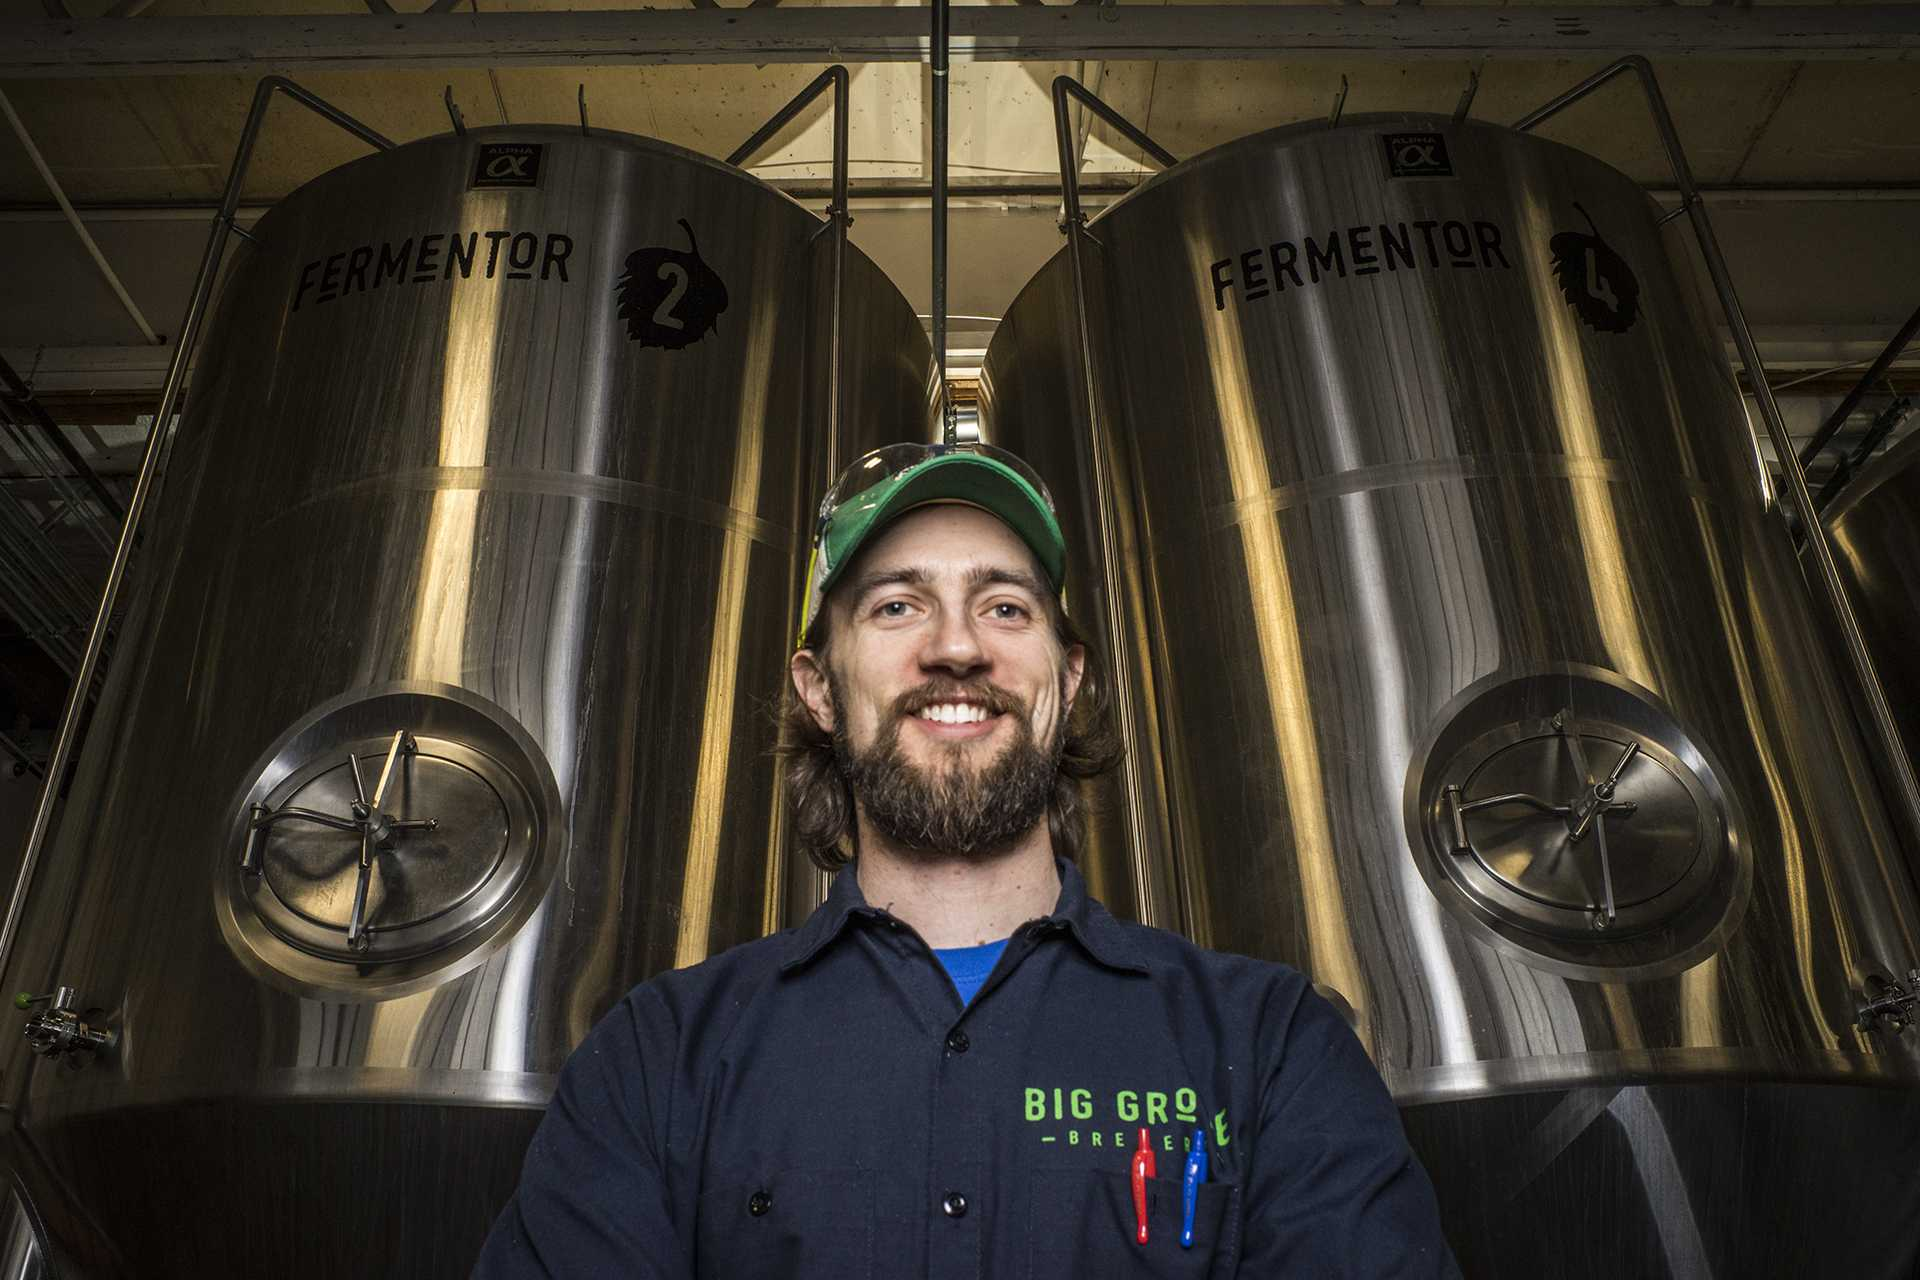 Big Grove to begin canning signature beers